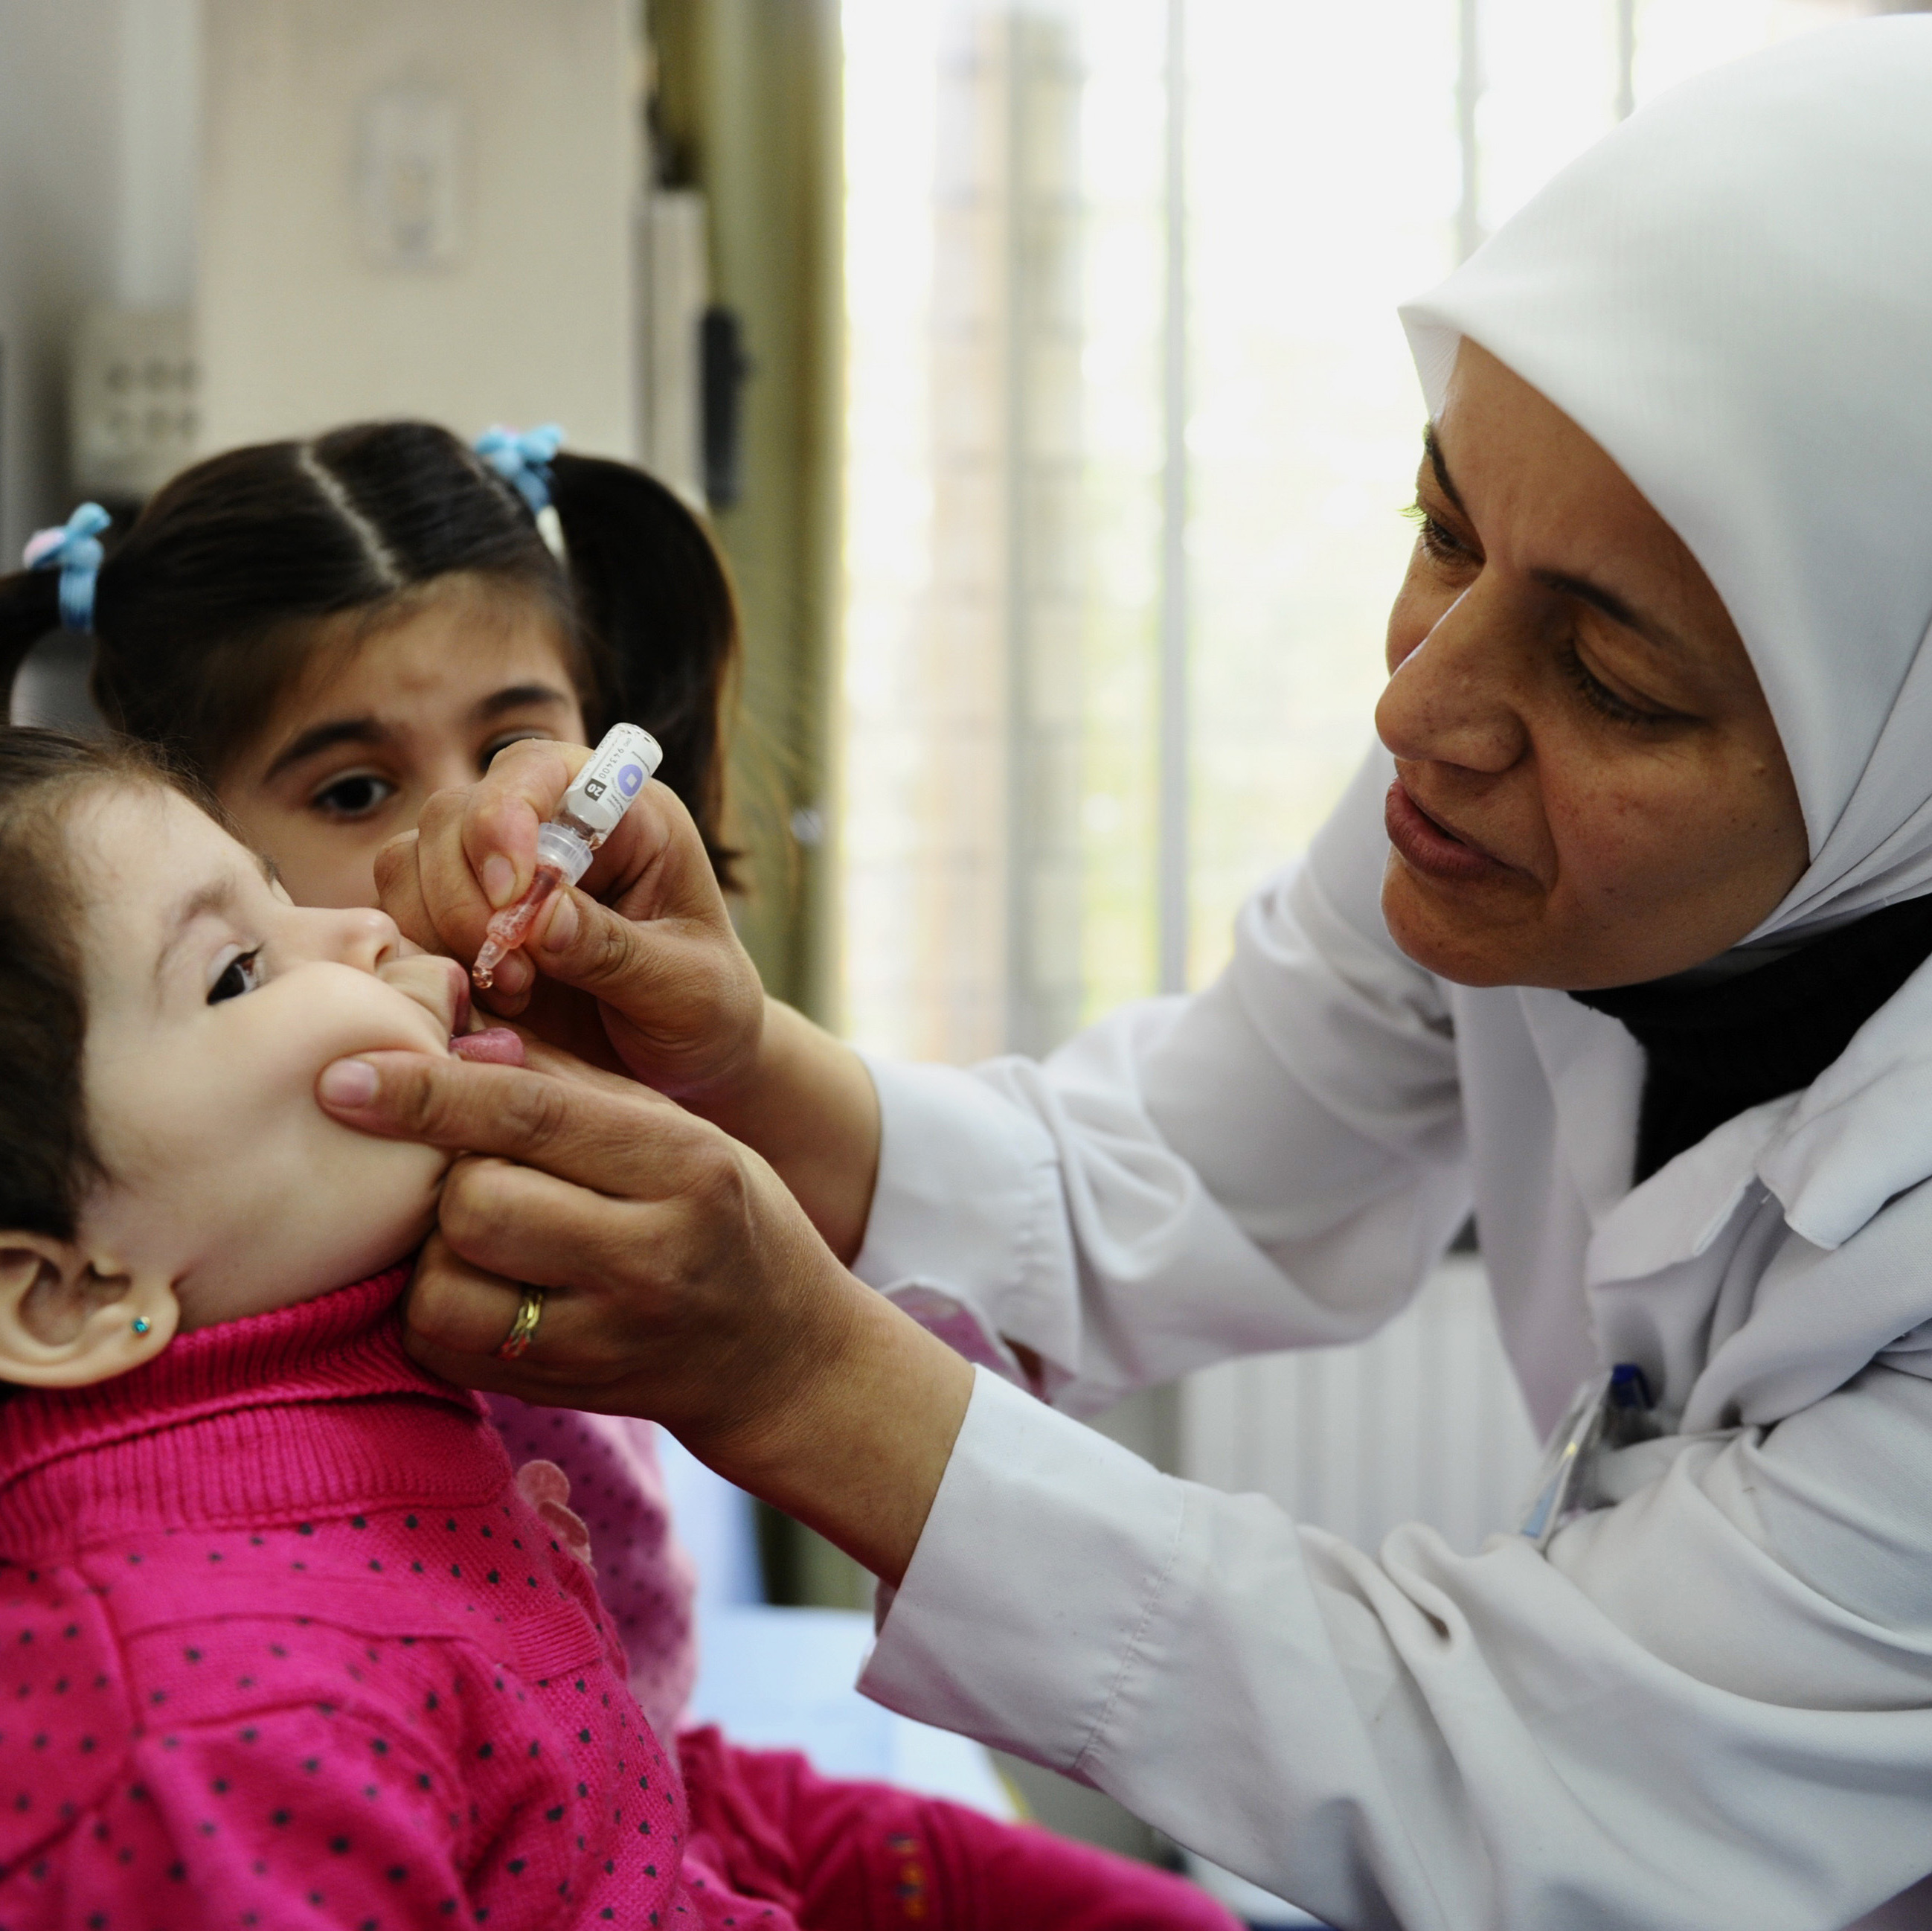 A health worker vaccinates a Syrian girl against polio at a clinic in Damascus on Oct. 29.